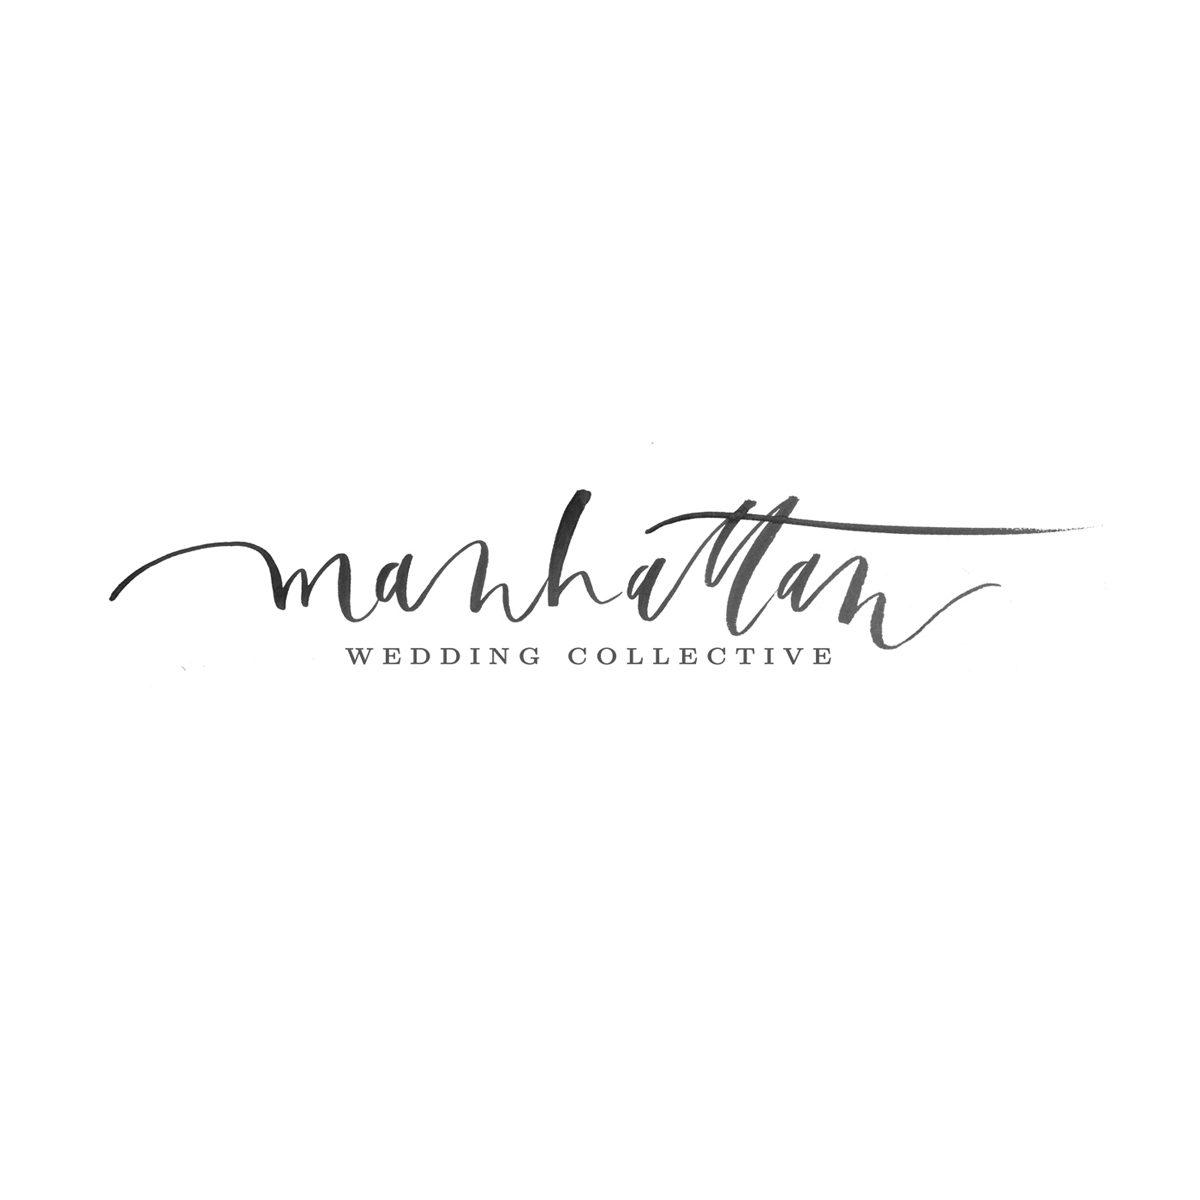 Manhattan Wedding Collective hand-lettered logo